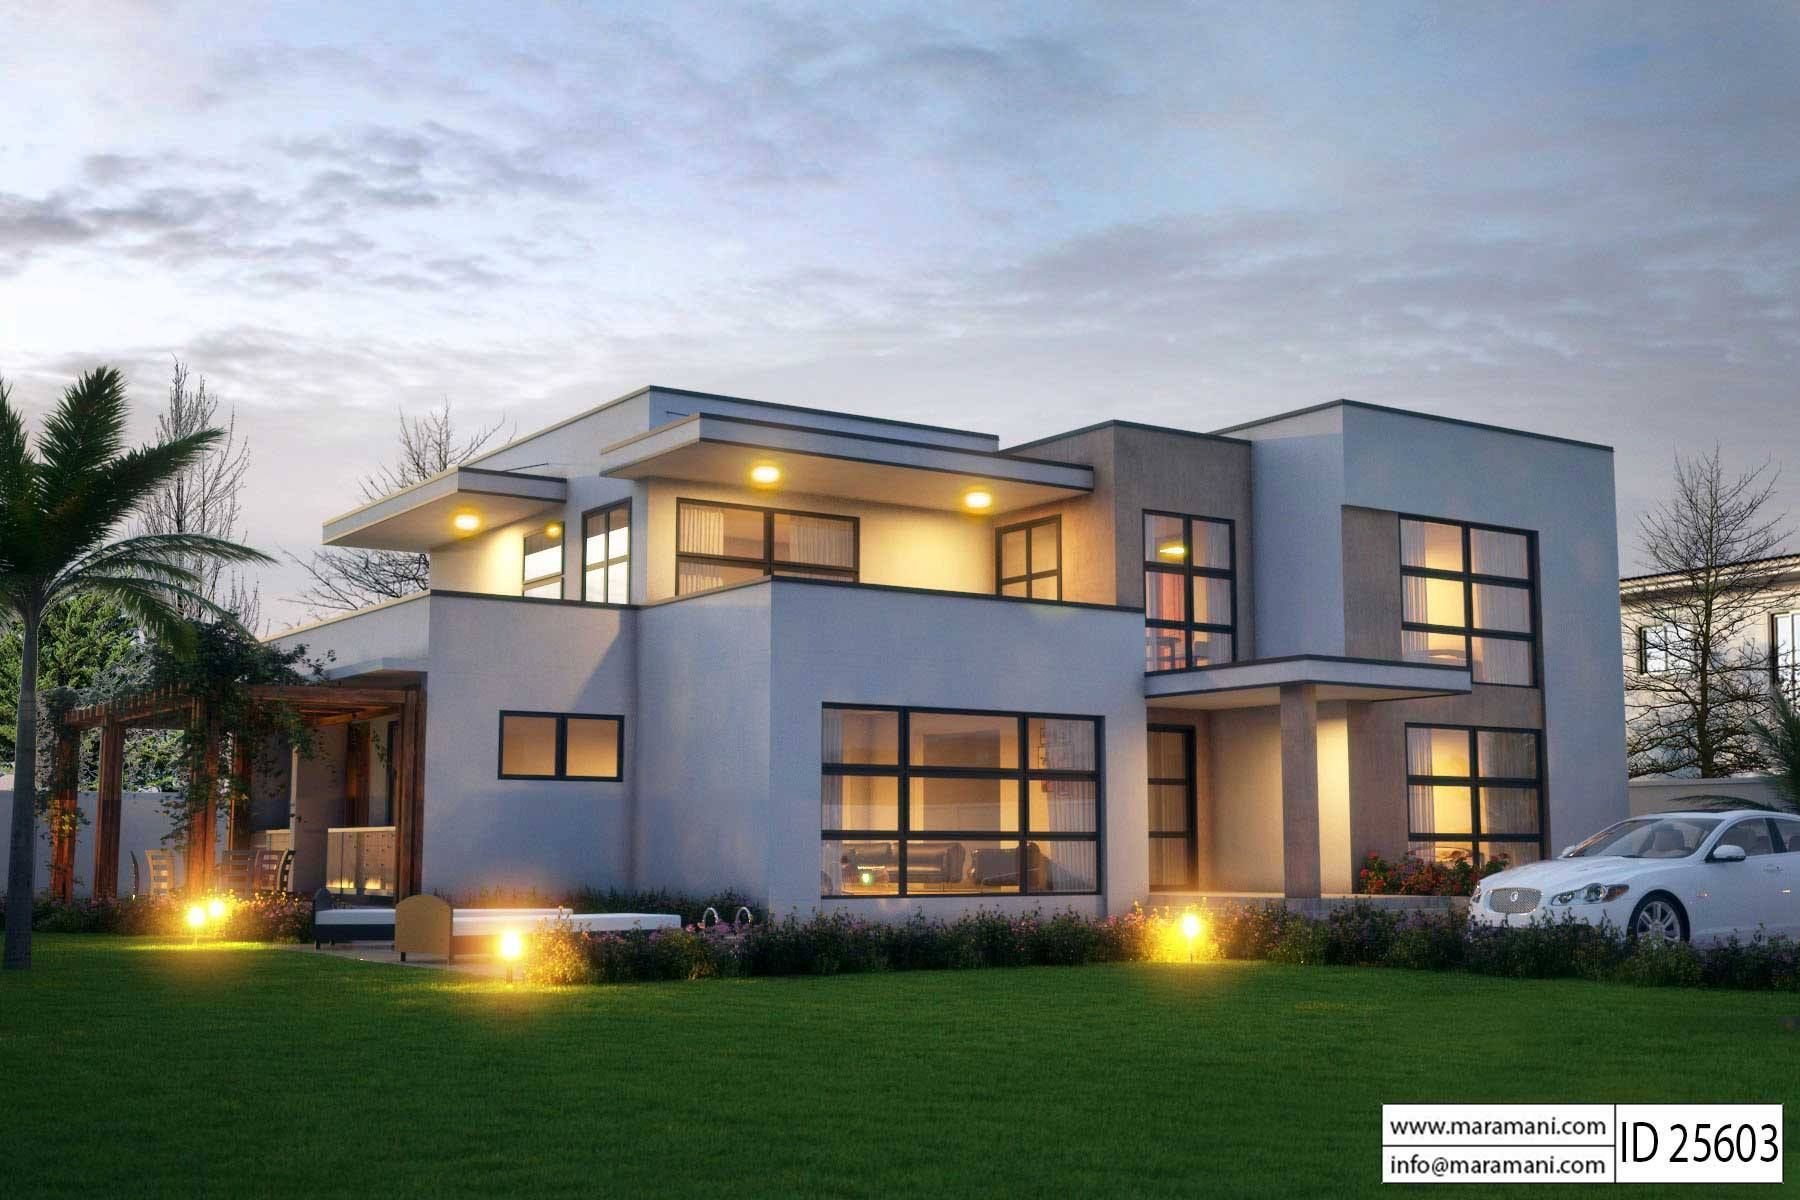 5 Rooms House Plans Modern House